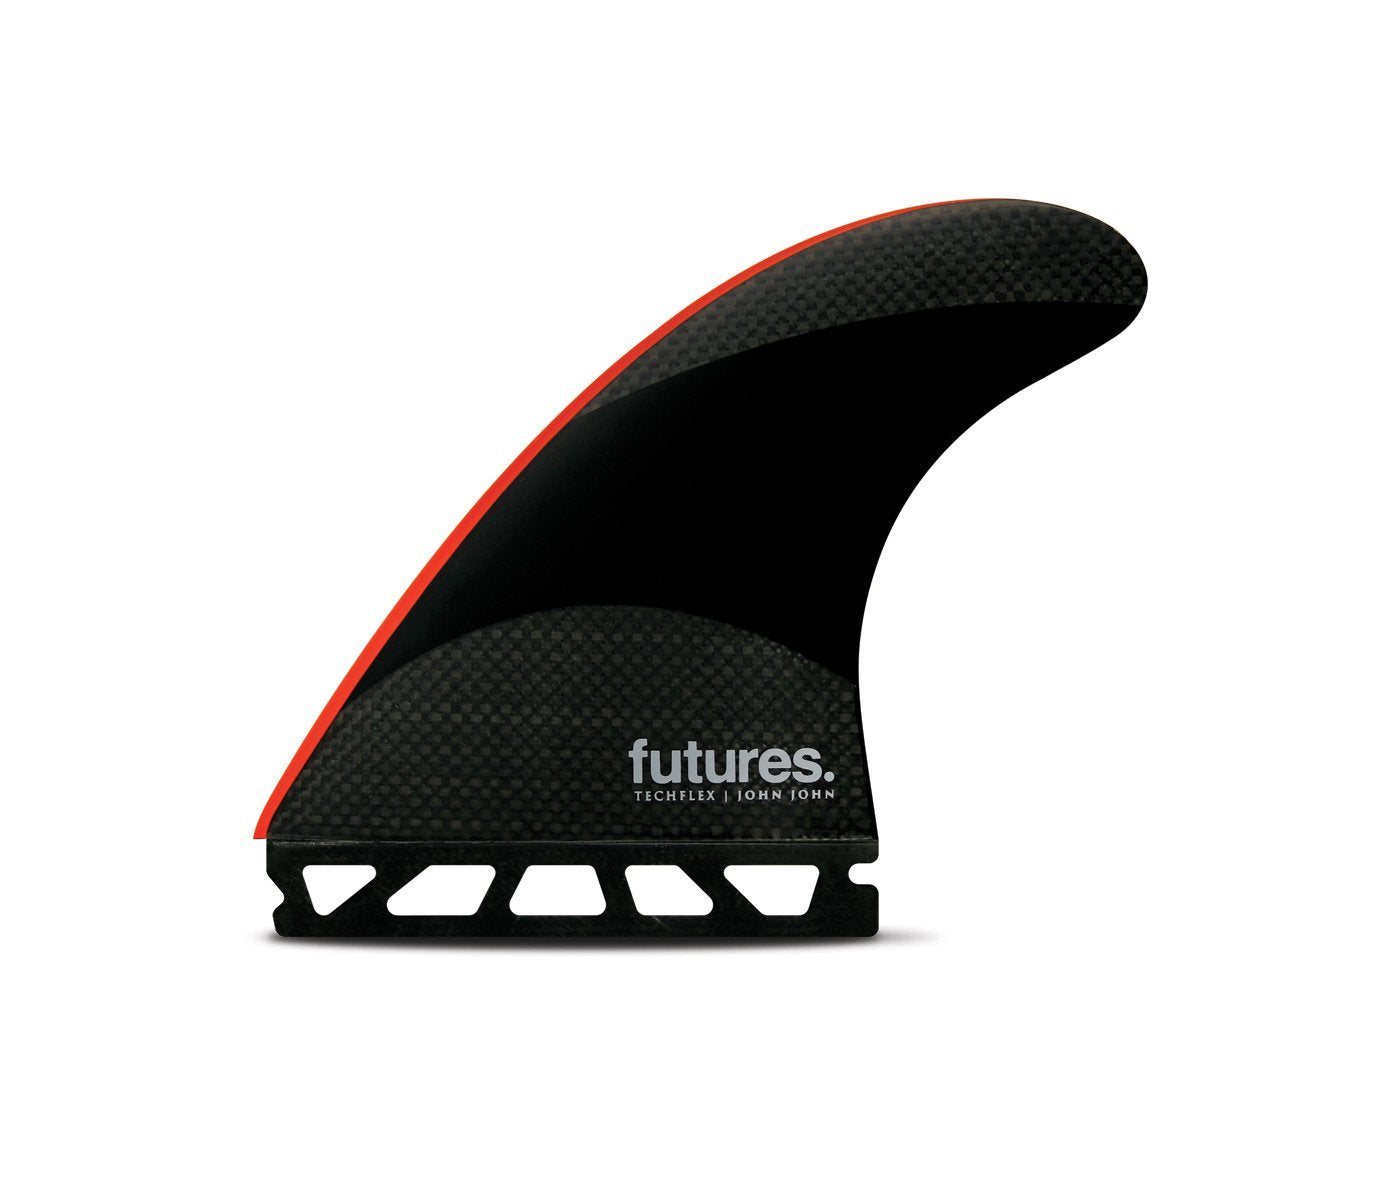 introducing futures tchflex series fins